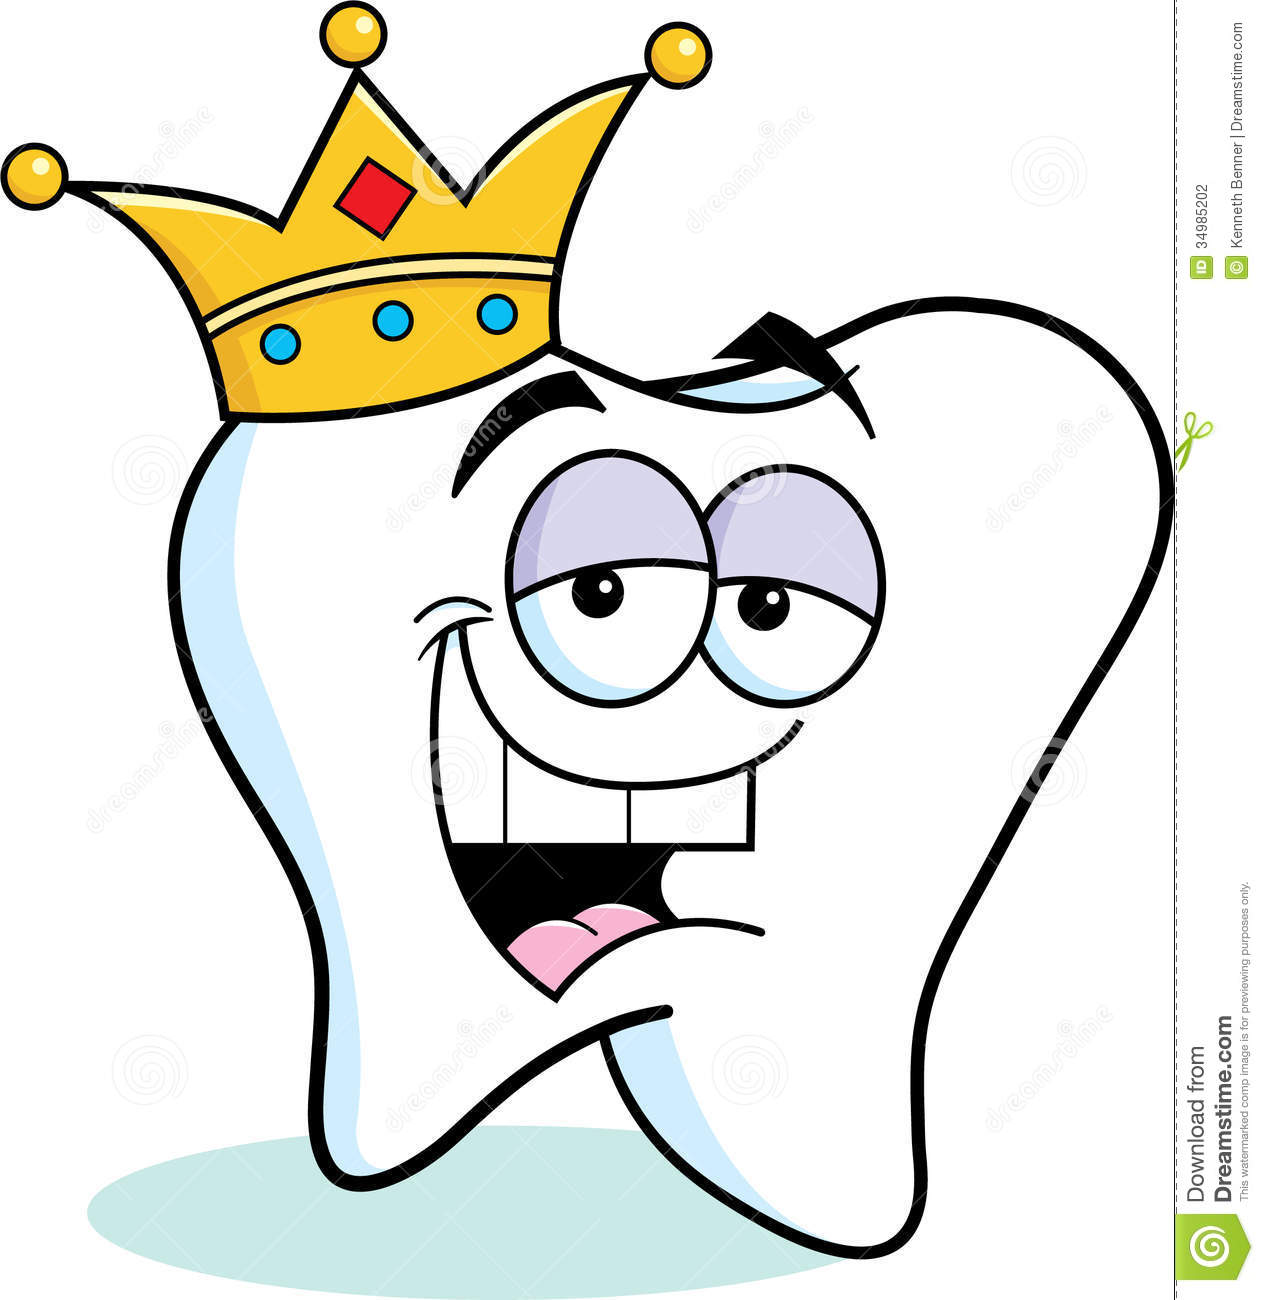 Cartoon Tooth Wearing A Crown Stock Photography - Image: 34985202